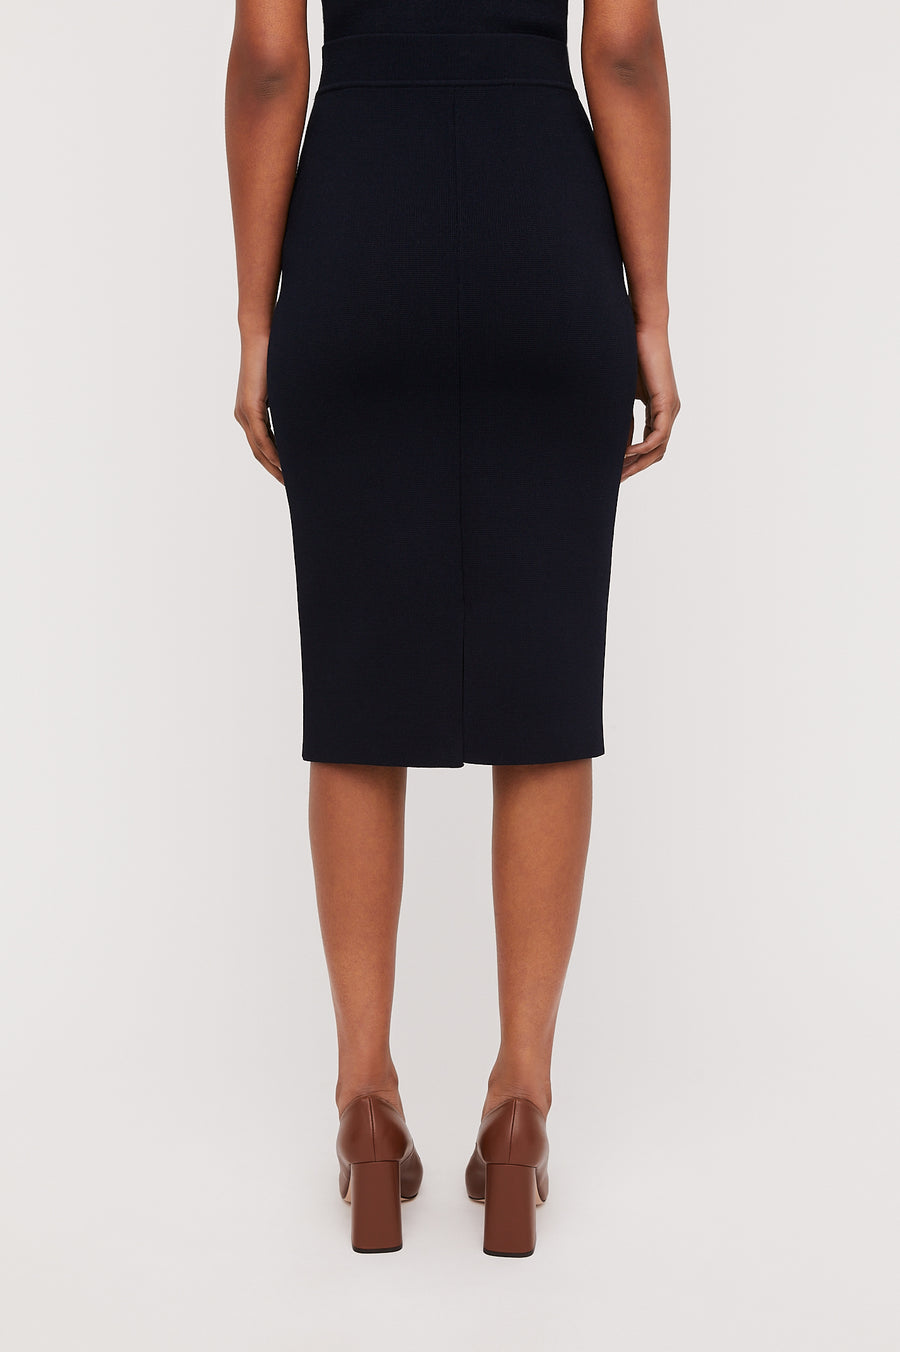 CREPE KNIT SLIT BACK SKIRT, NAVY color